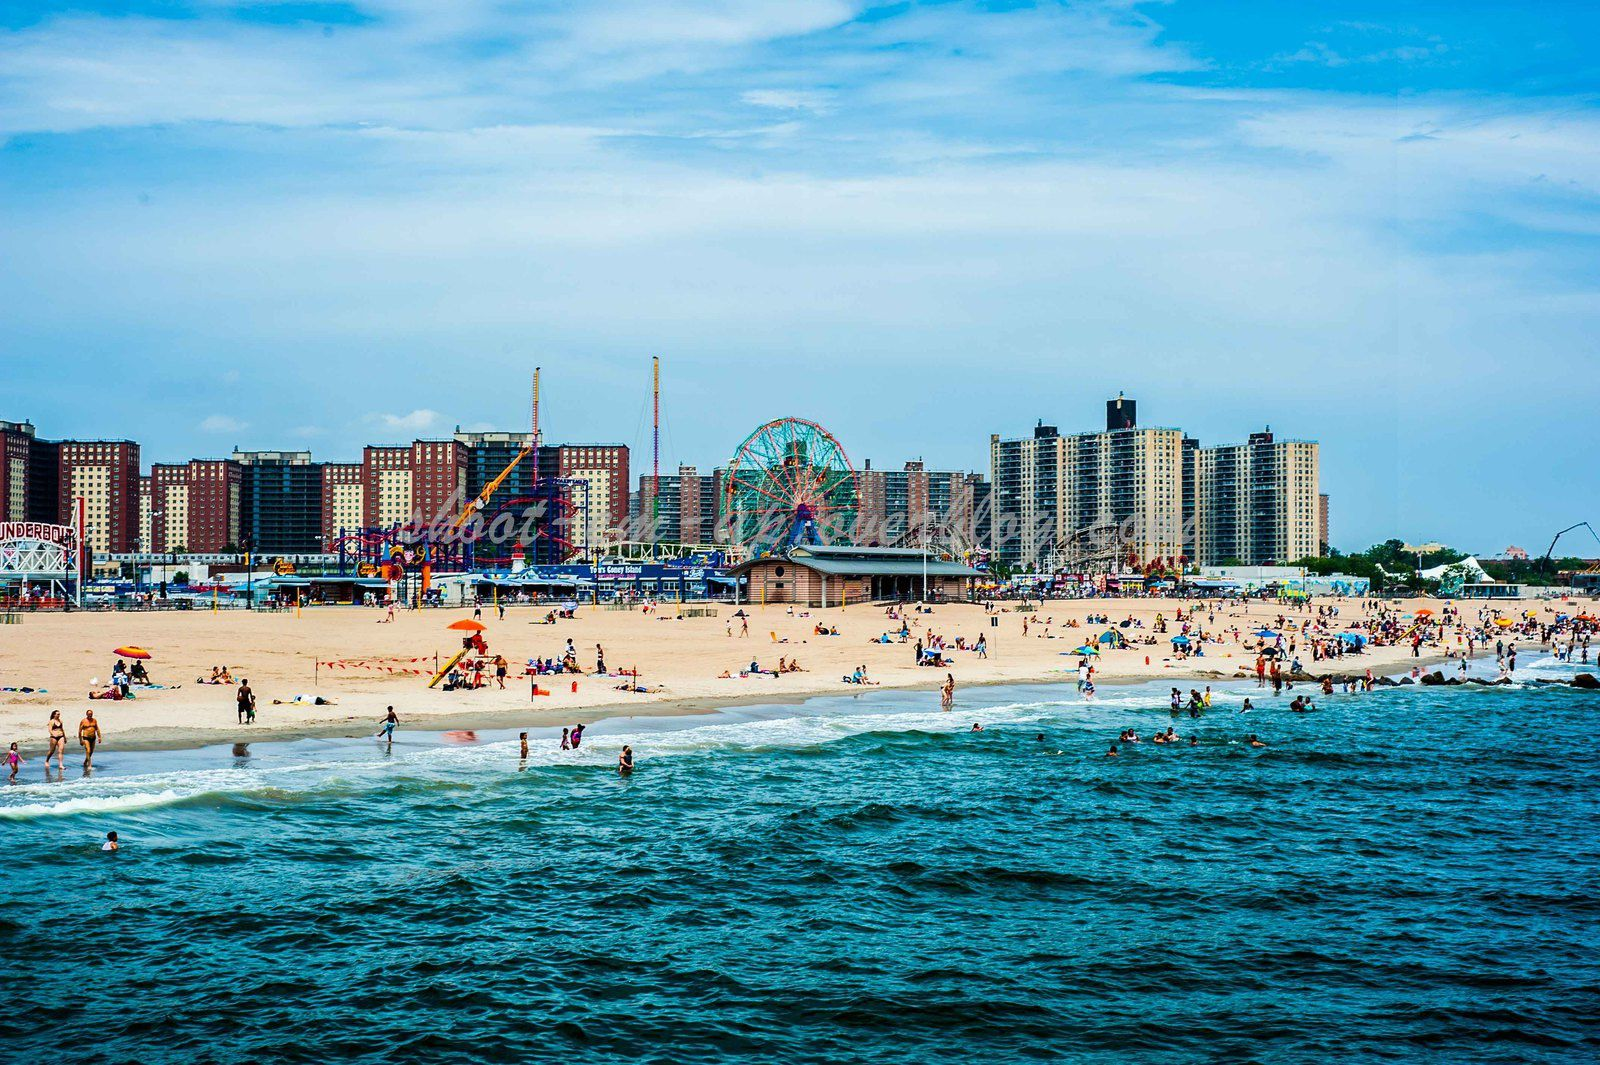 Jour 4 : Coney Island, Brooklyn